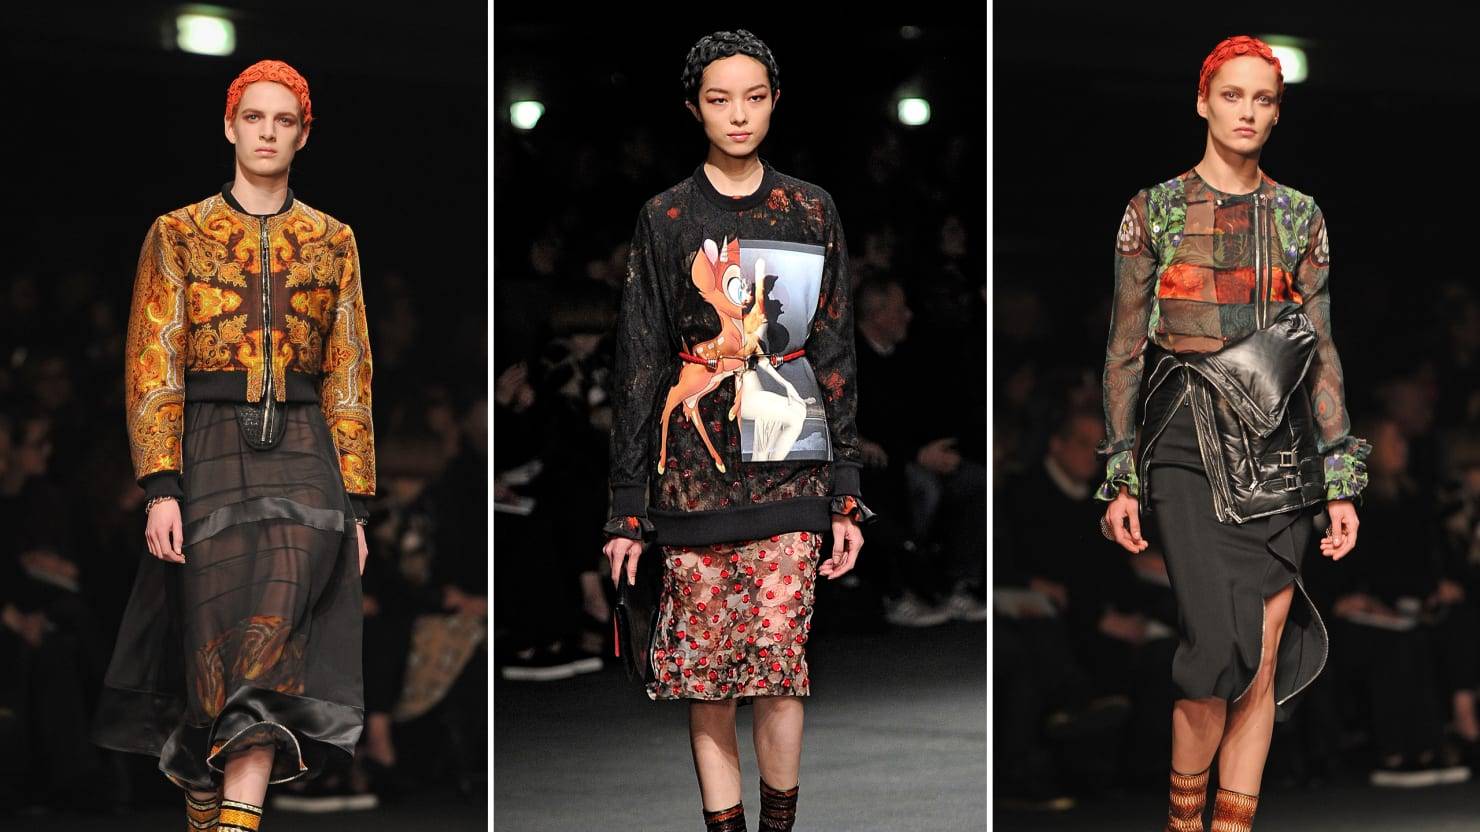 Givenchy: Show of the Season?